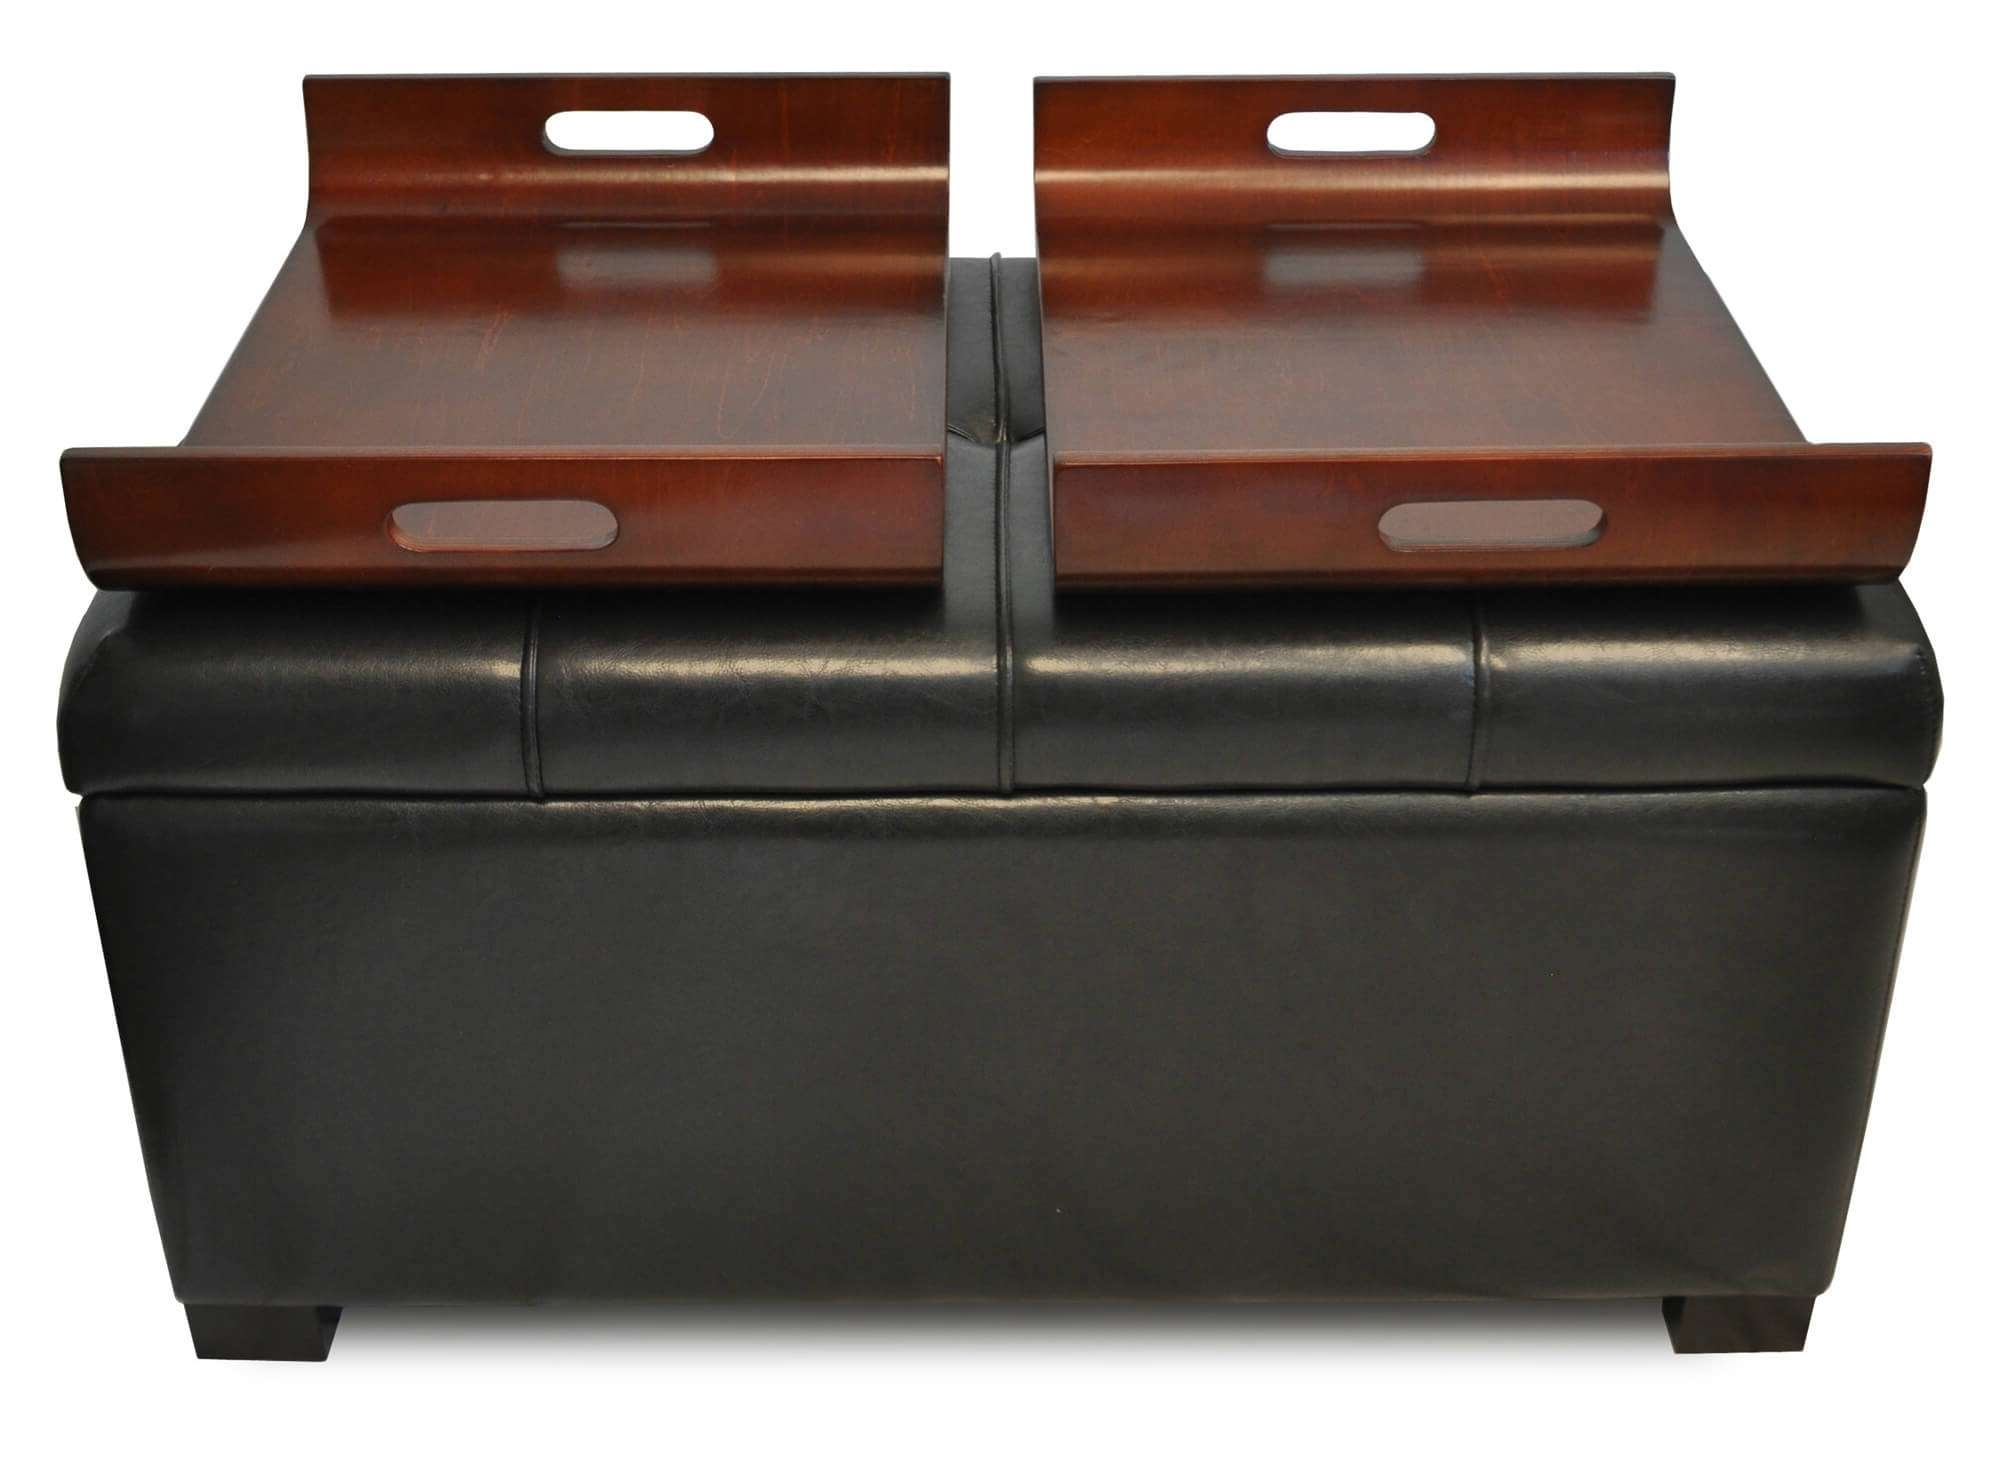 Most Popular Brown Leather Ottoman Coffee Tables Throughout 36 Top Brown Leather Ottoman Coffee Tables (View 15 of 20)